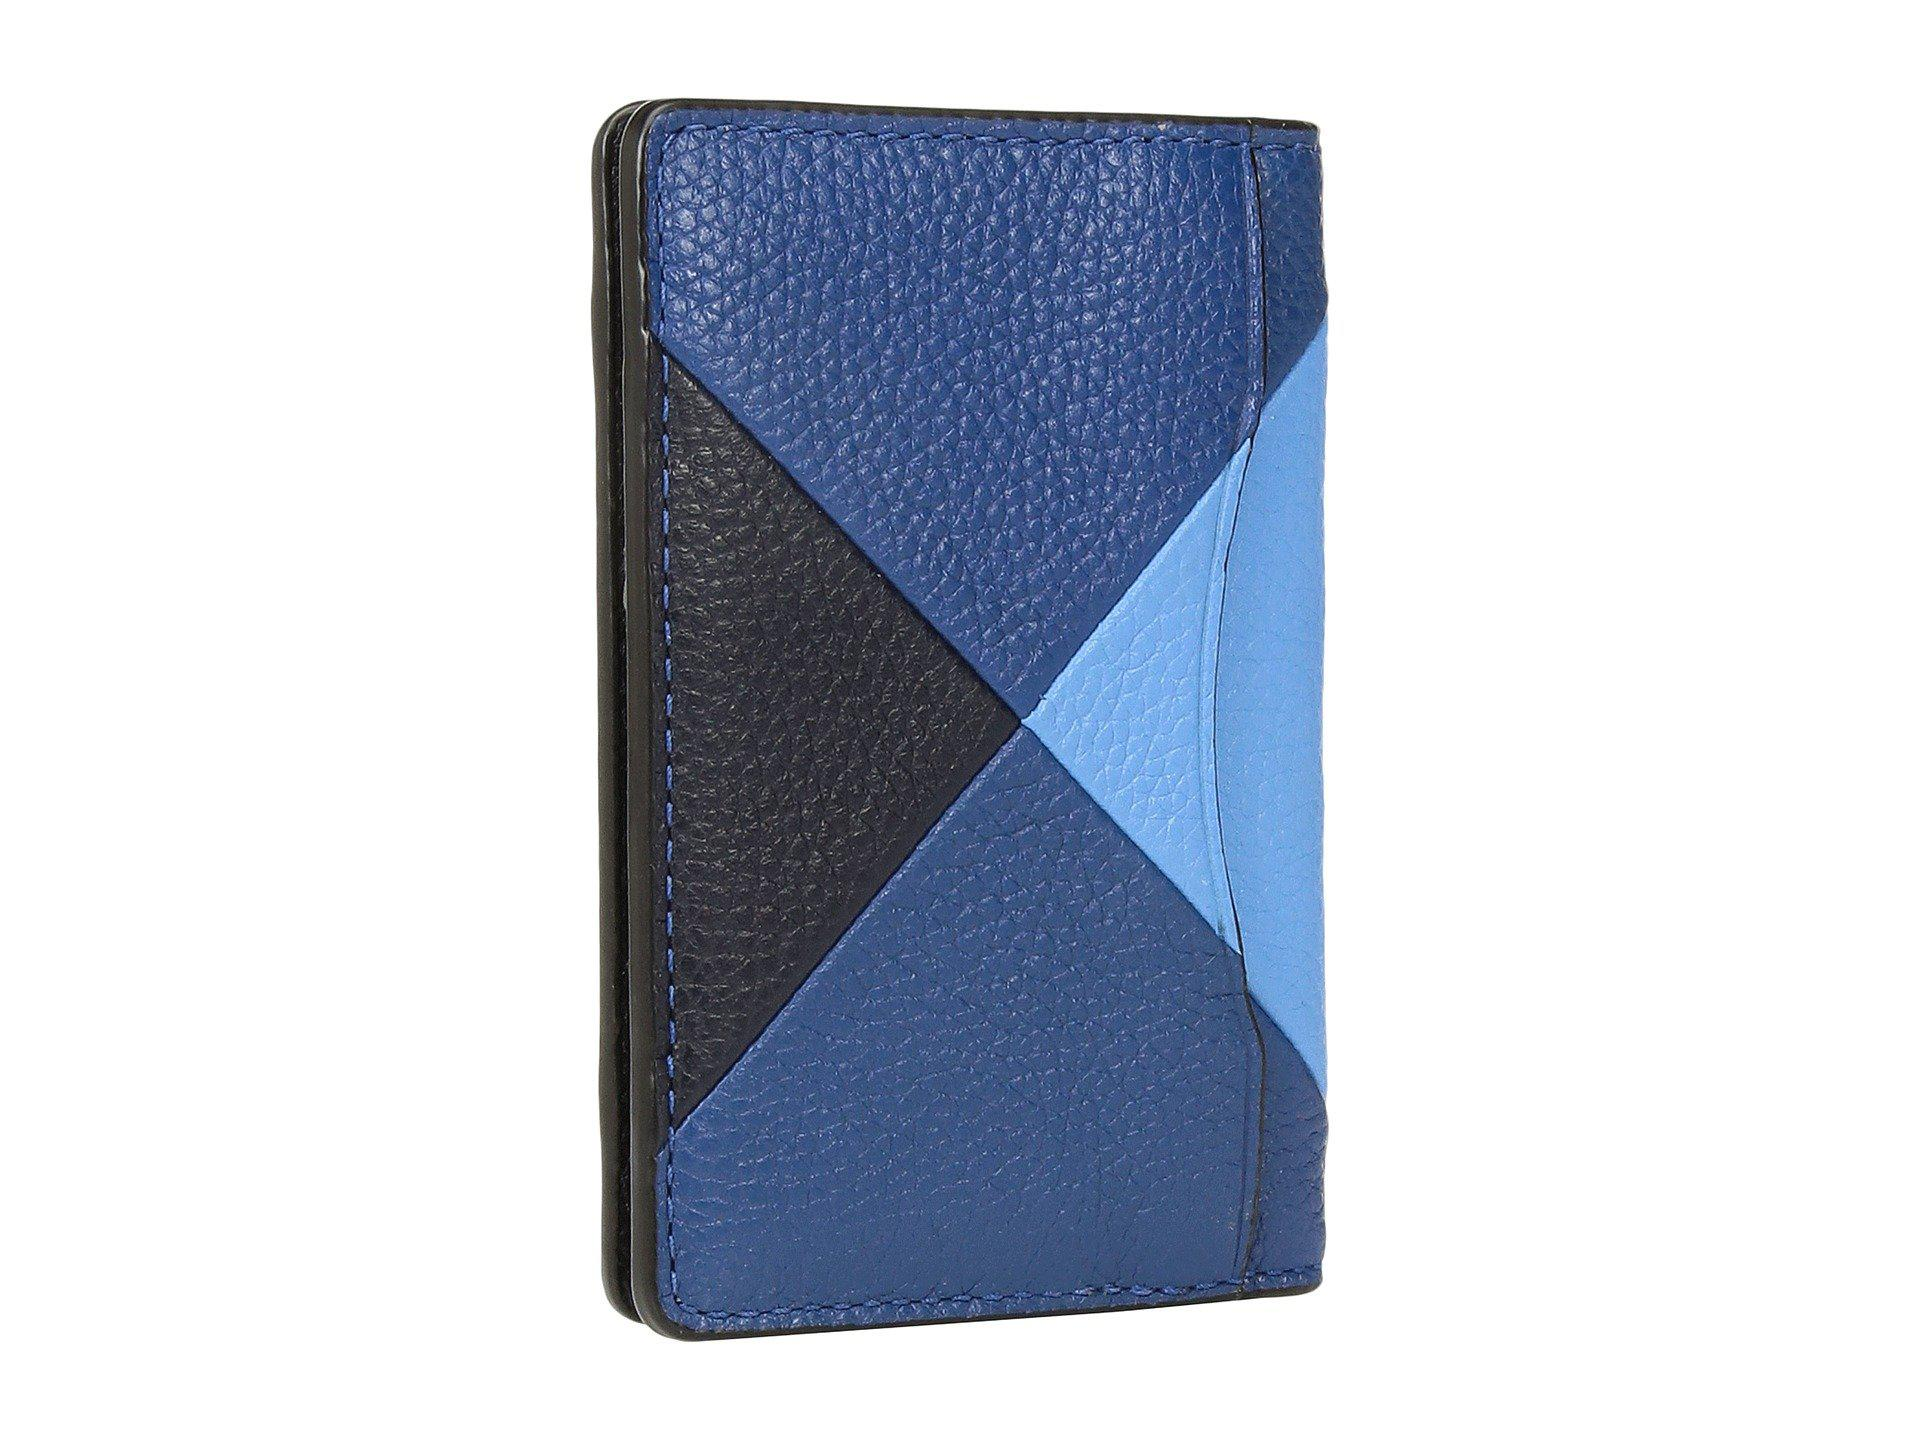 895c76e1a8a5 Lyst - Coach Refined Pebbled Patchwork Card Wallet in Blue